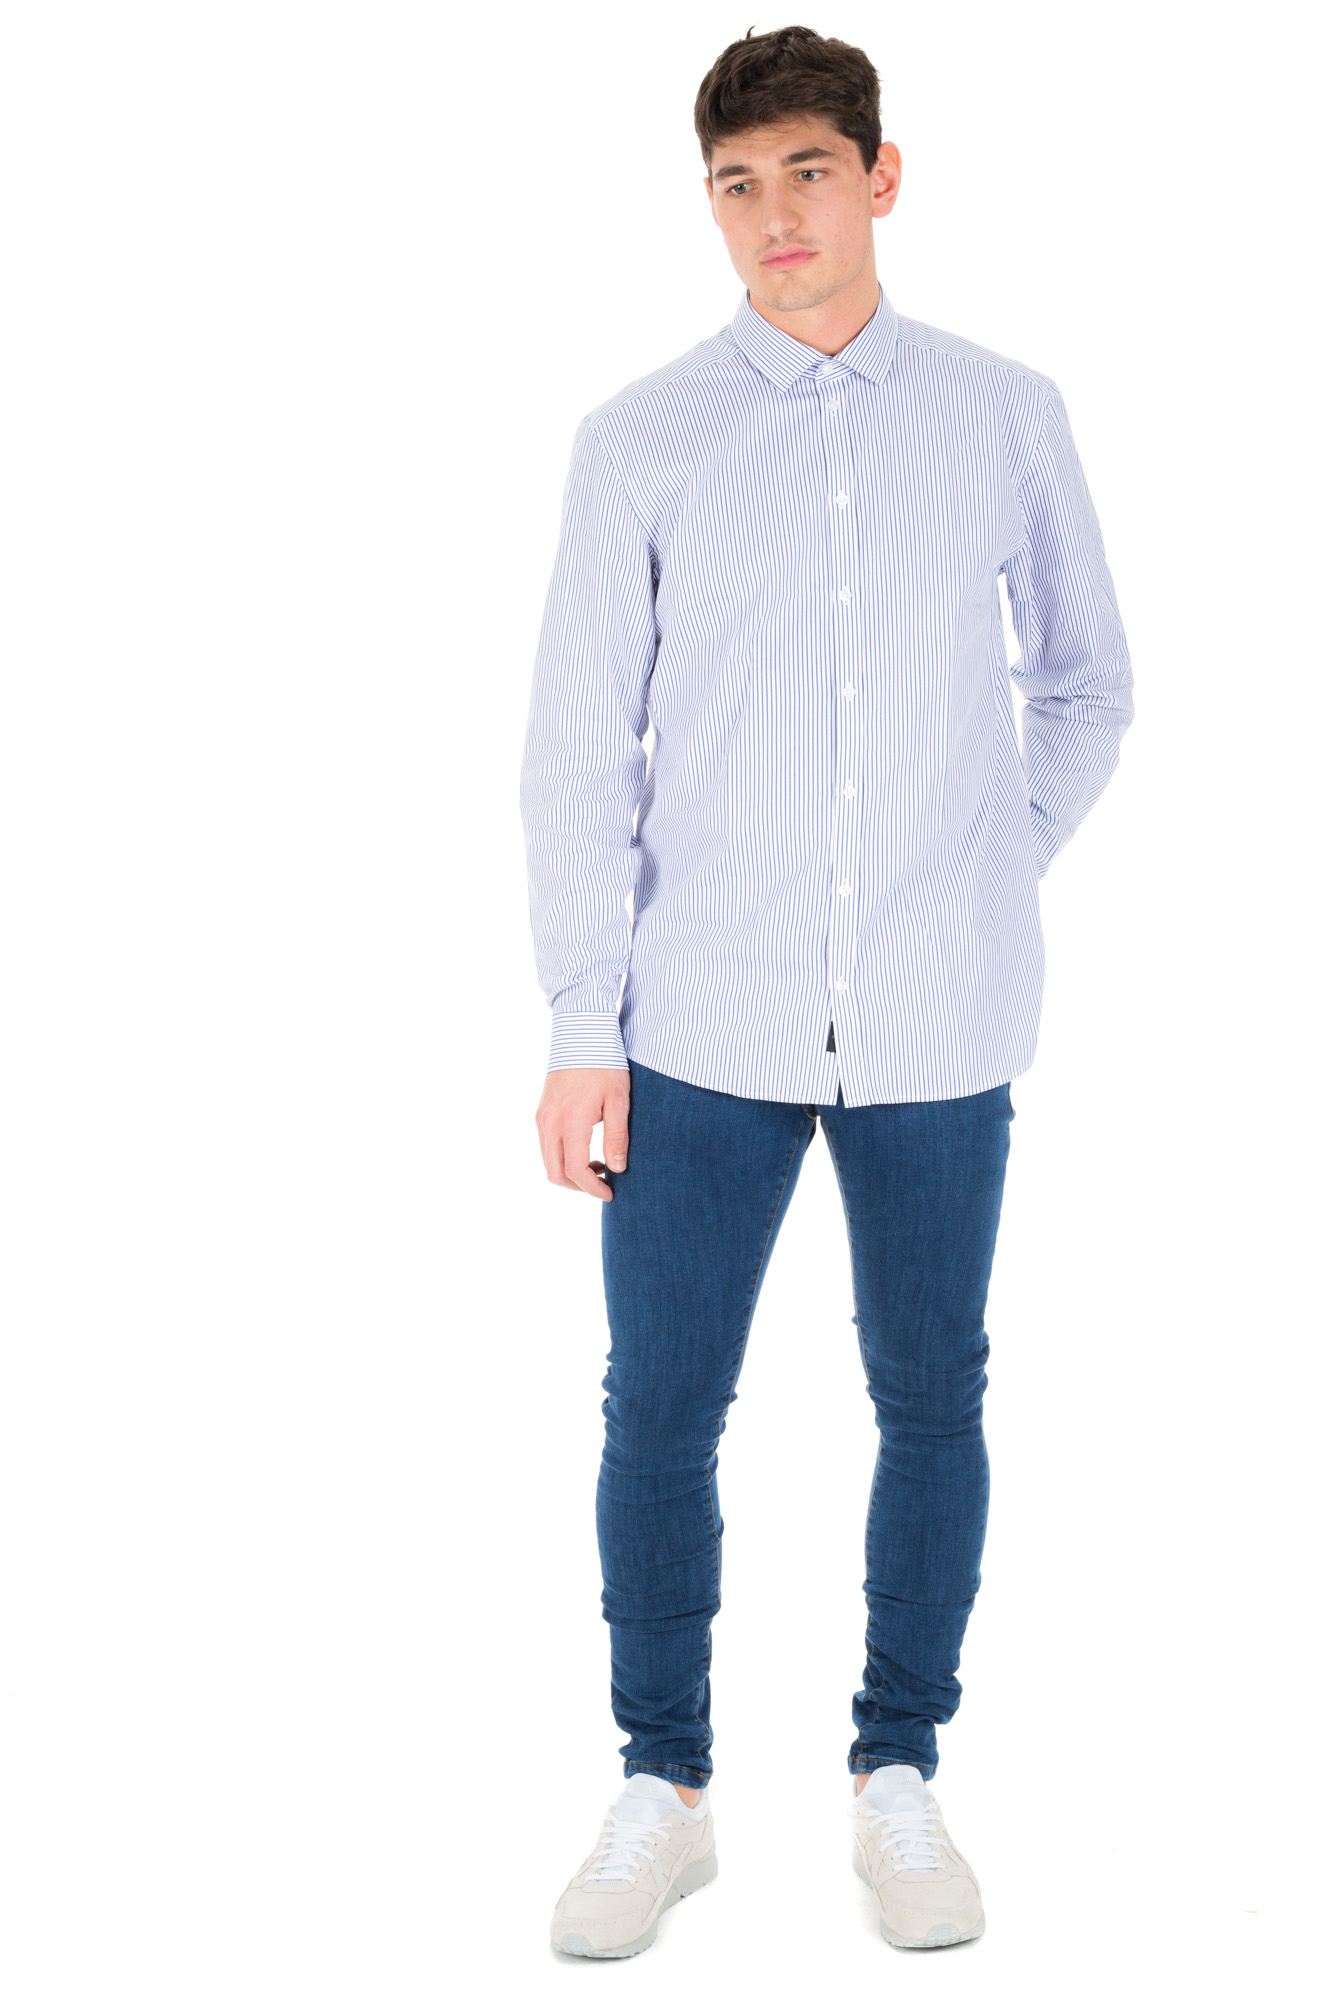 Minimum - Camicia slim blu a righe